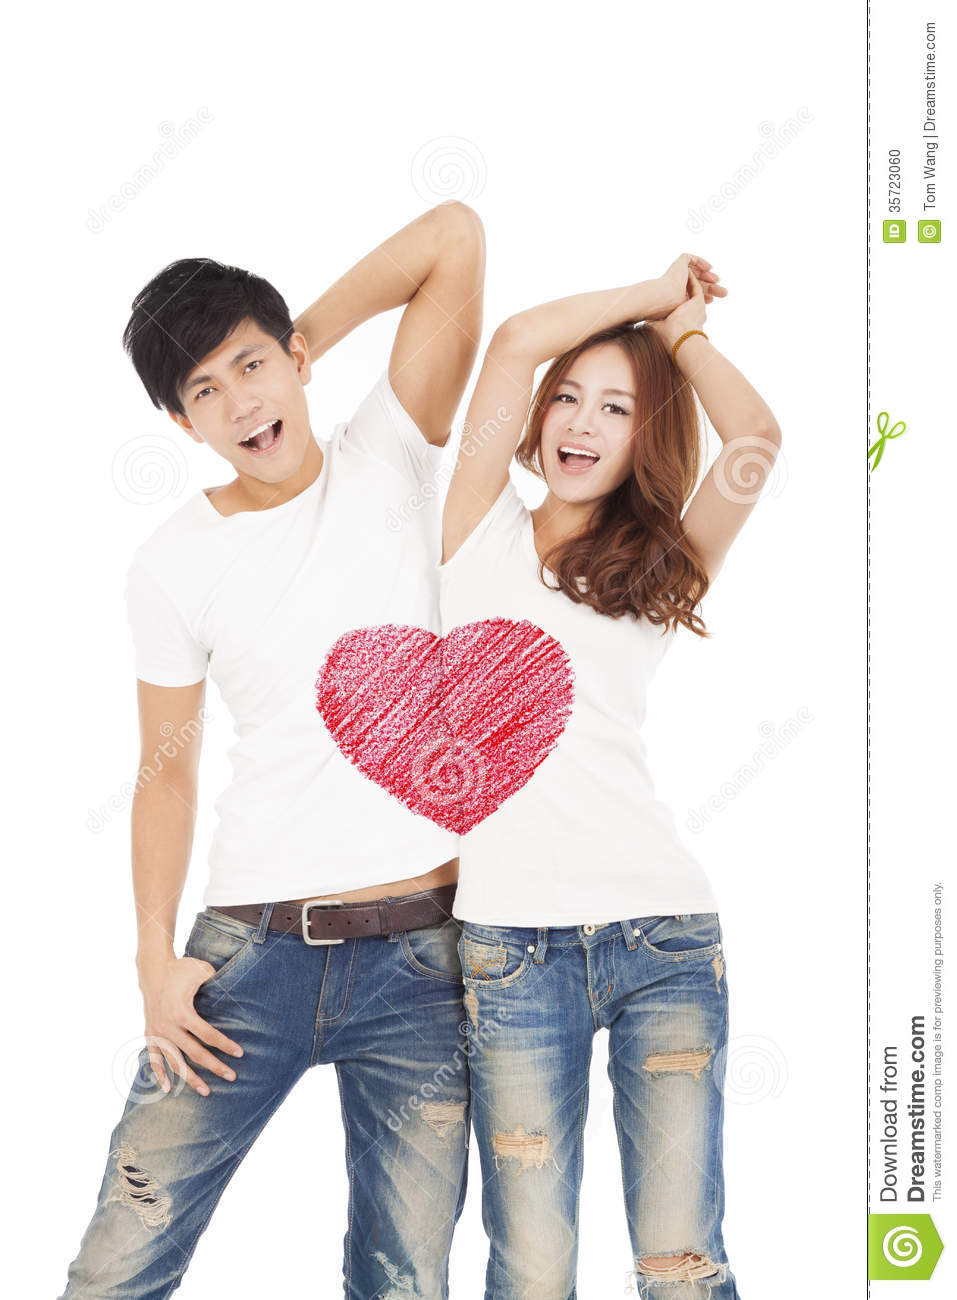 Happy Couple With Love Heart Symbol Design On The Whit T Shirt Stock